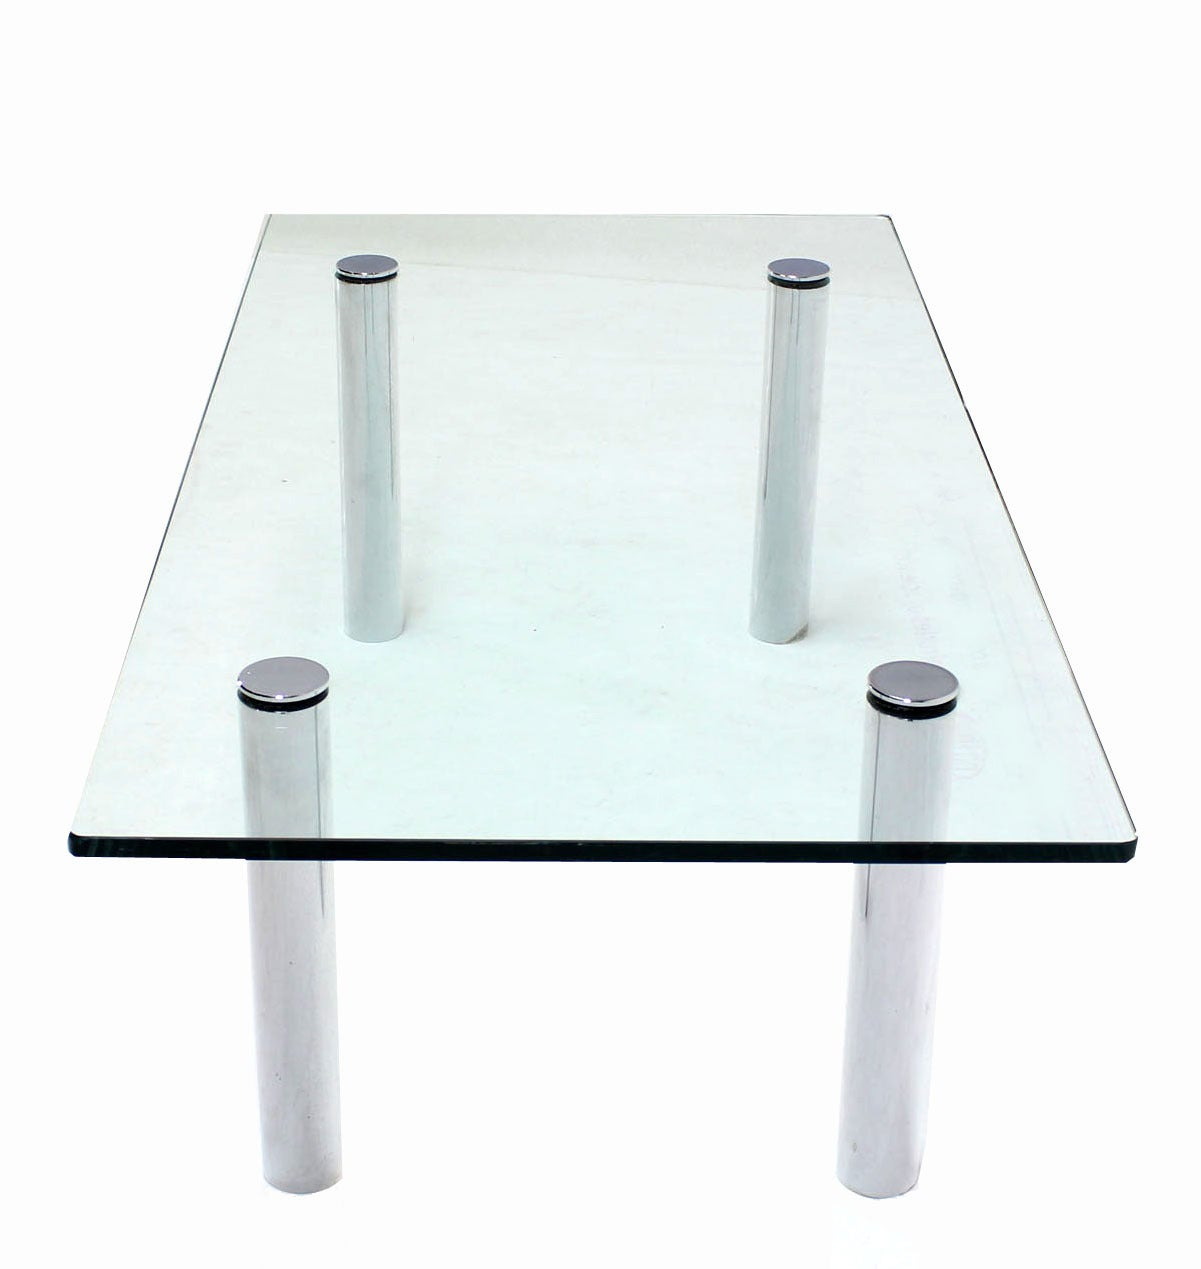 20th Century Mid Century Modern Chrome Cylinder Legs Glass Rectangular Coffee Table by Pace For Sale